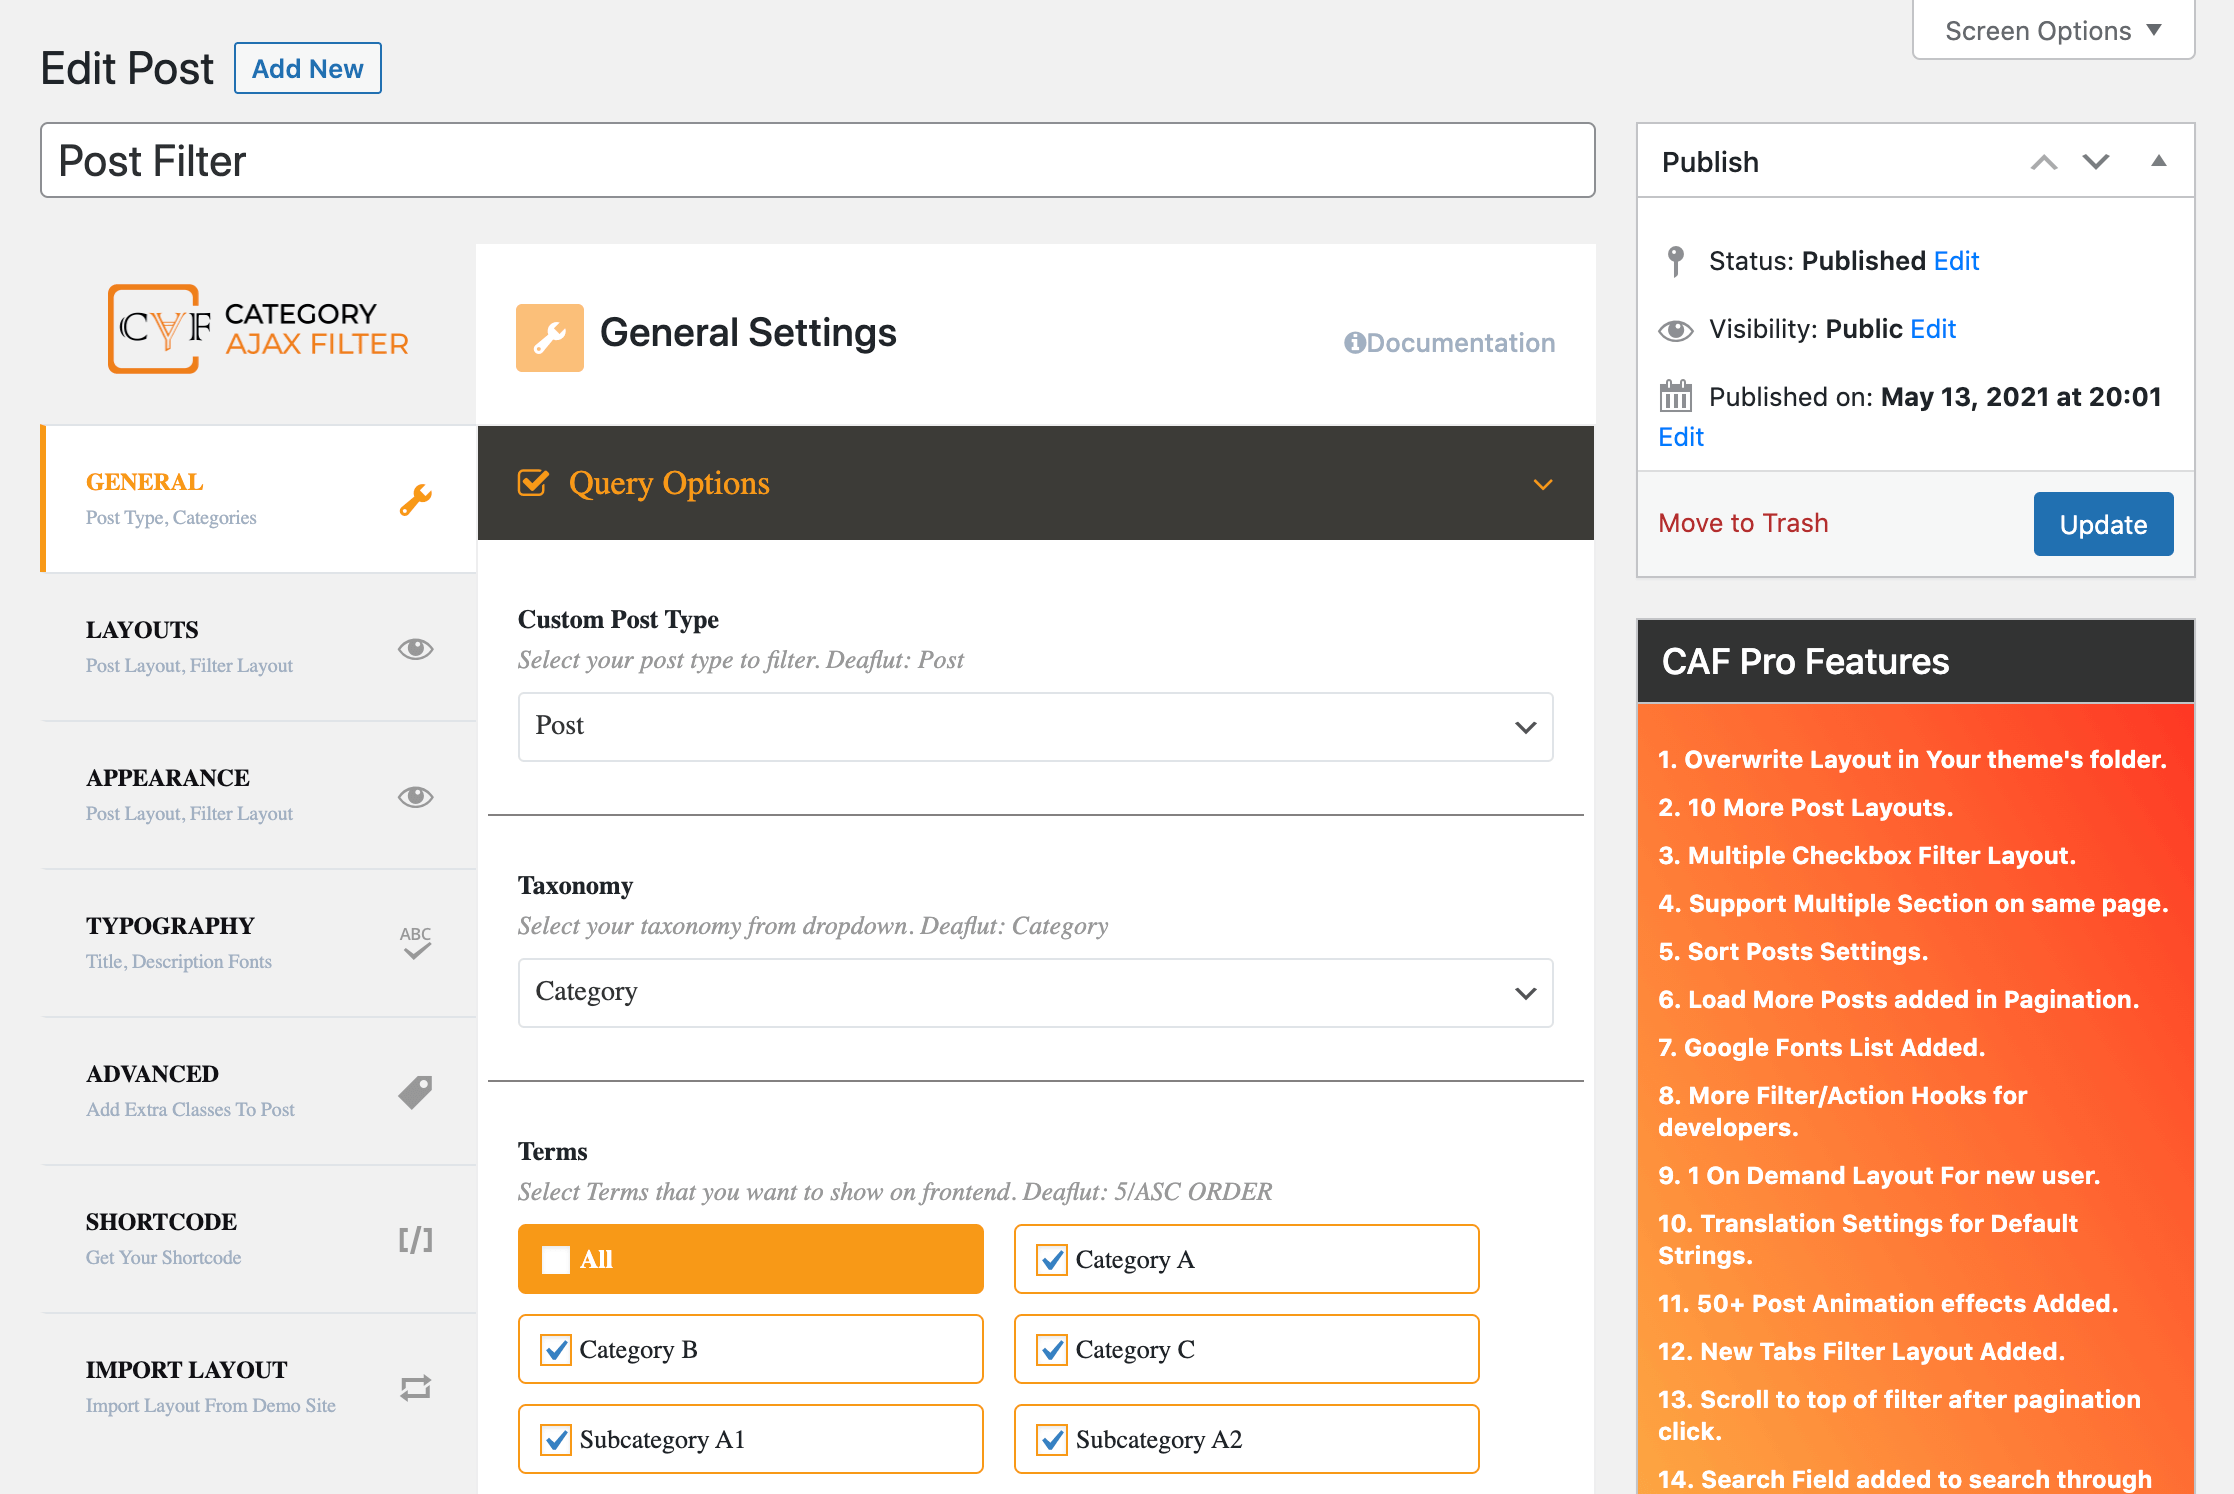 The Filter Posts by Category settings.